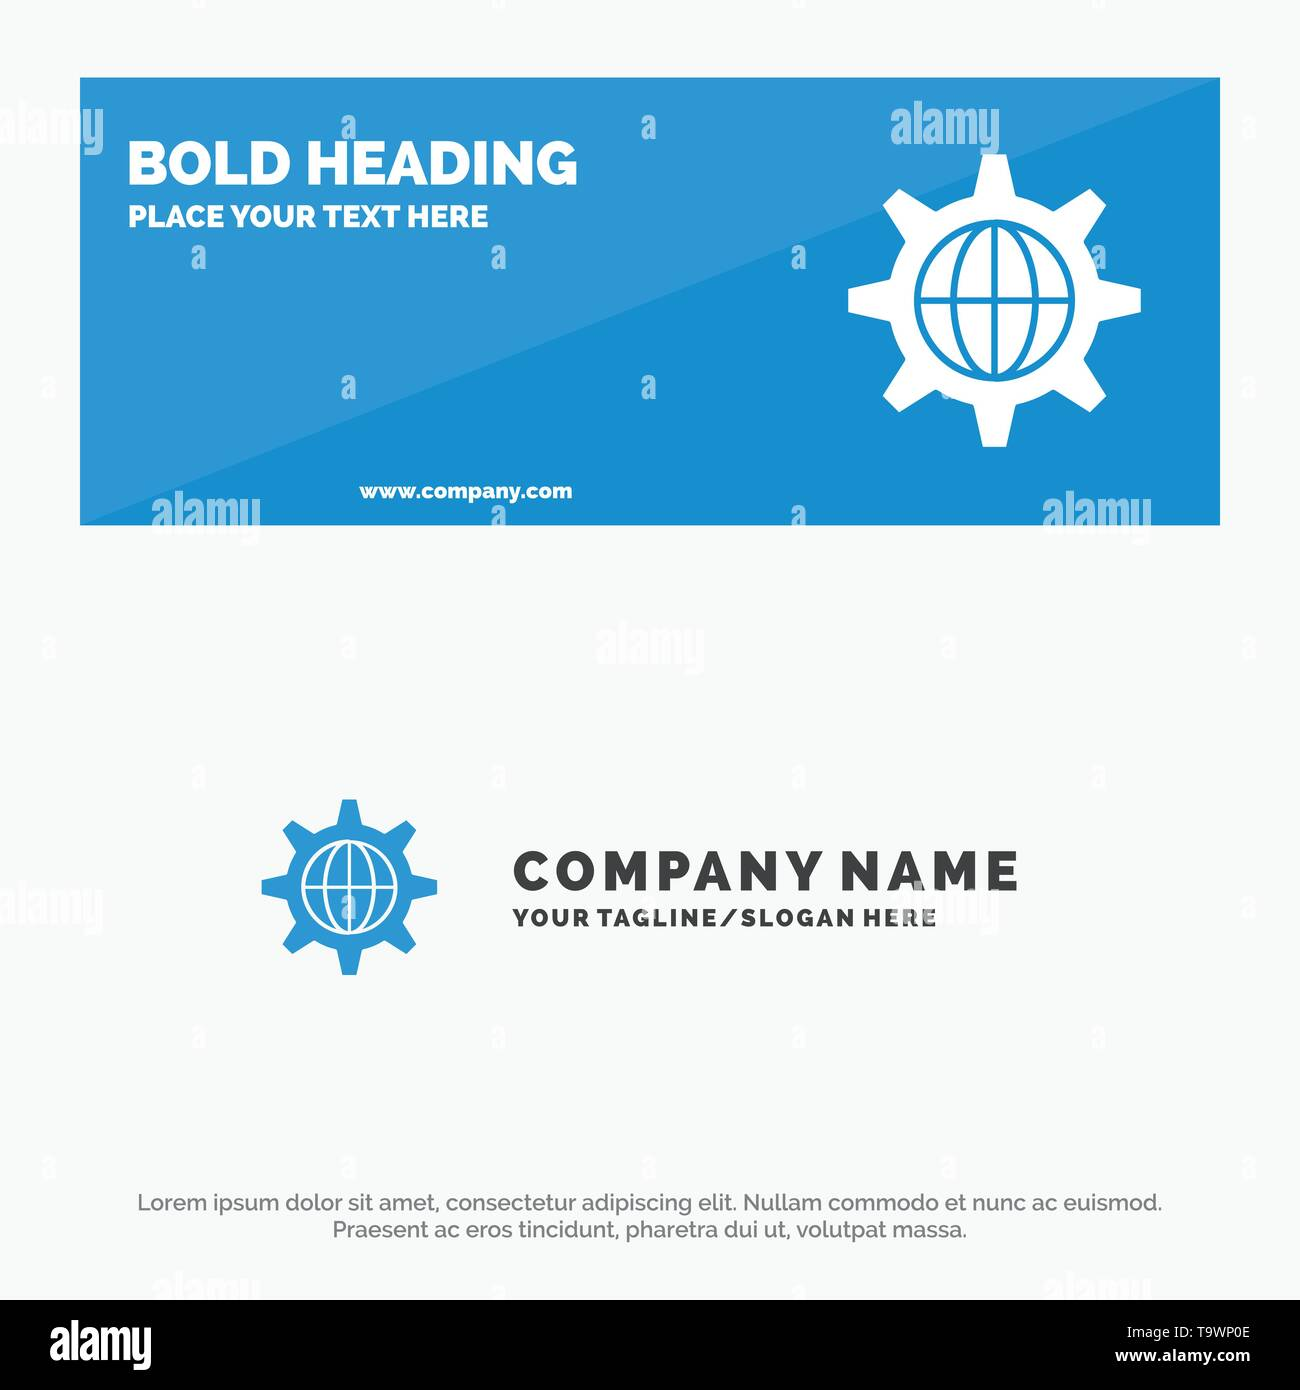 Security, World, Globe, Internet SOlid Icon Website Banner and Business Logo Template - Stock Image